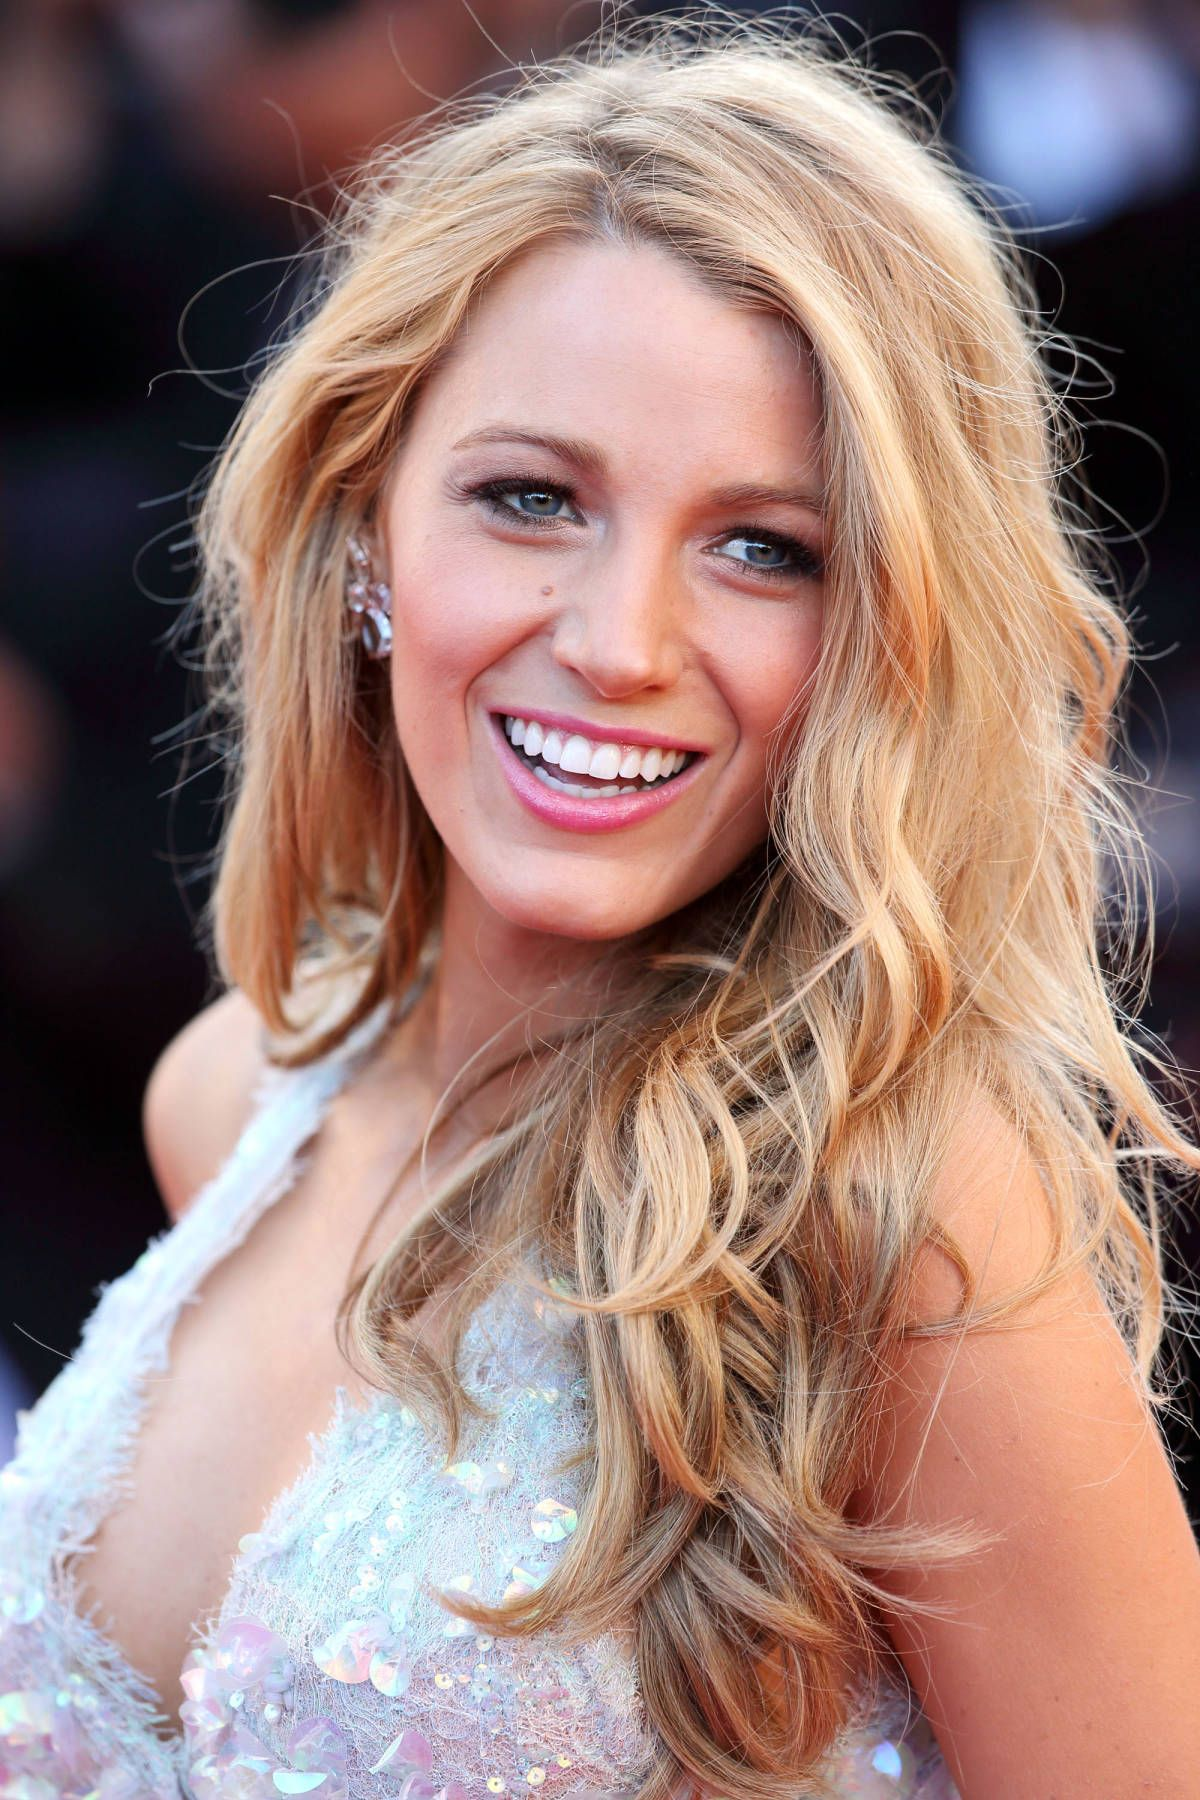 Blonde Hair Colors For Best Celebrity Hairstyles From - Hairstyle color blonde